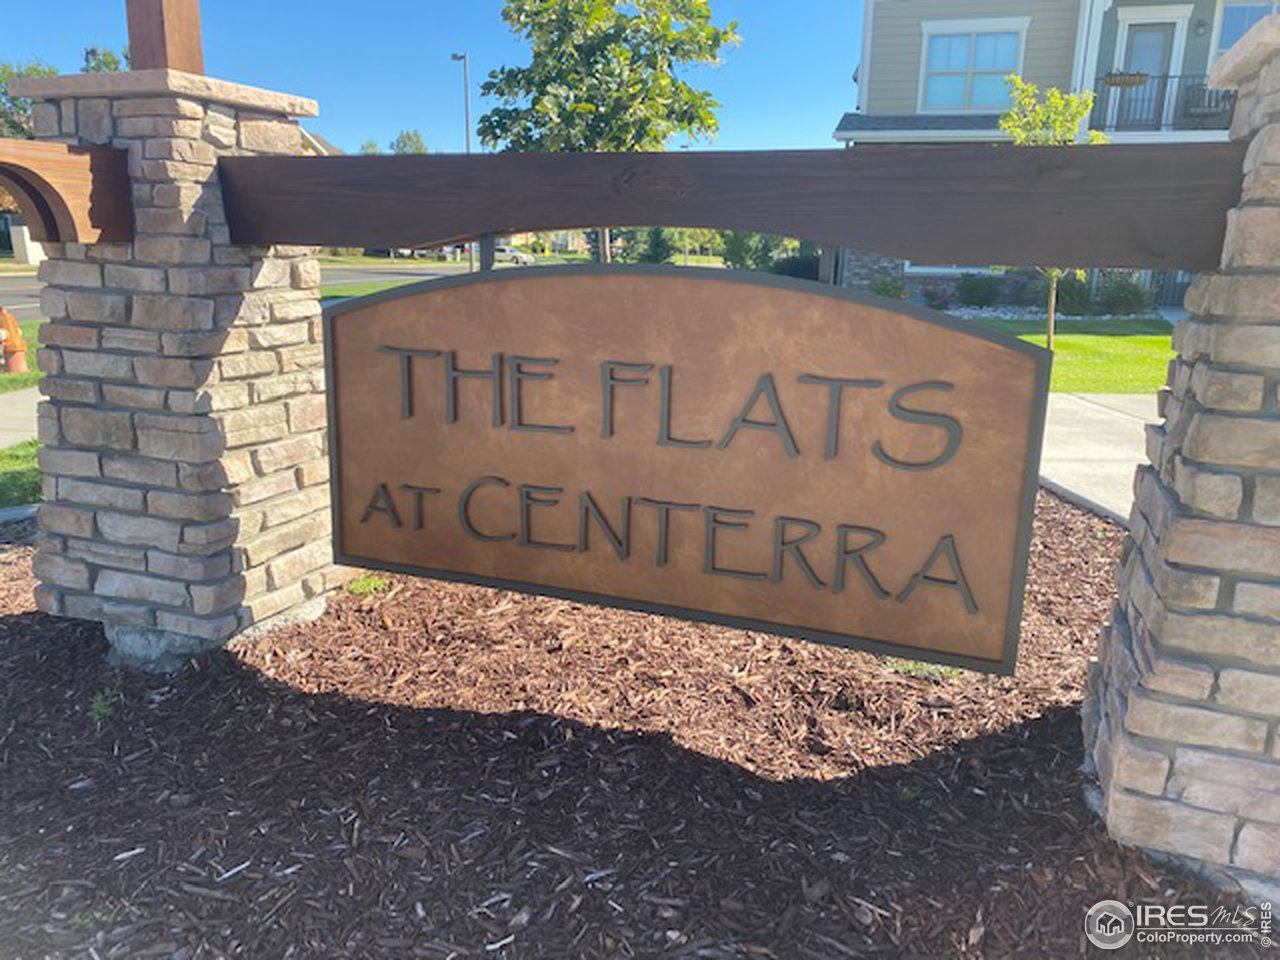 Centrally located by NOCO's finest shopping areas